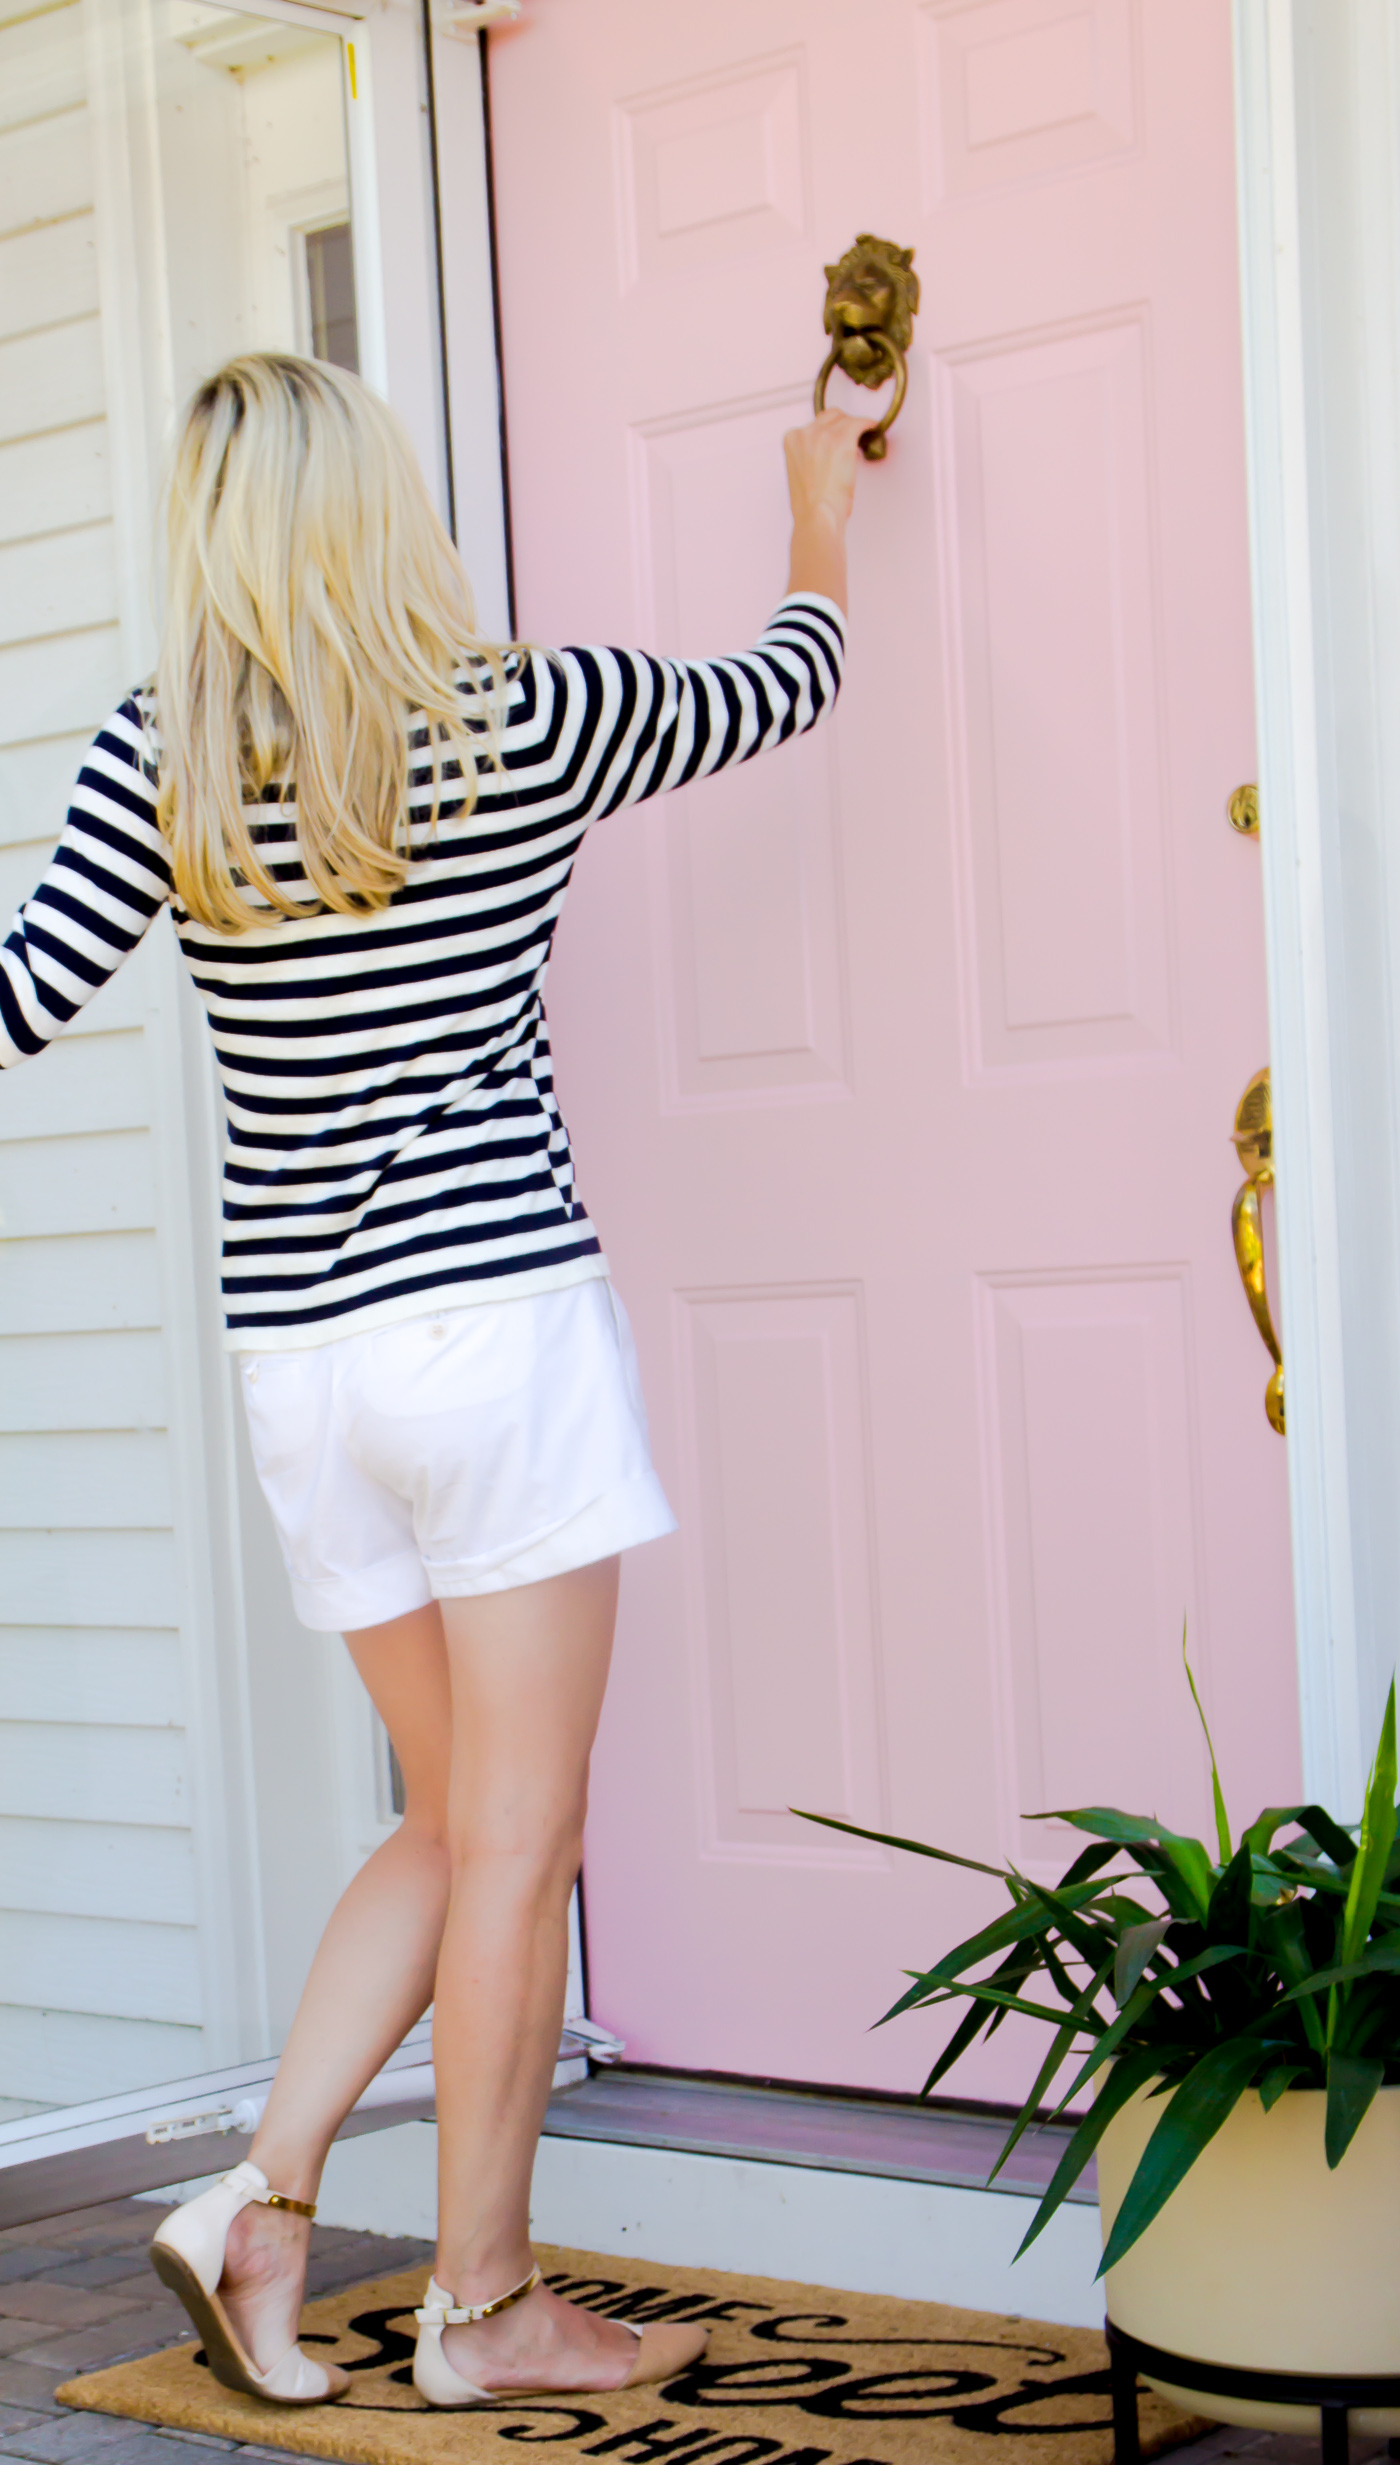 One of the easiest ways to give your house a fresh look and make it your own is by painting the front door. It's easy, quick and a fairly inexpensive project. We have been making small changes to make our new house feel like our own and painting the front door definitely helped with that.